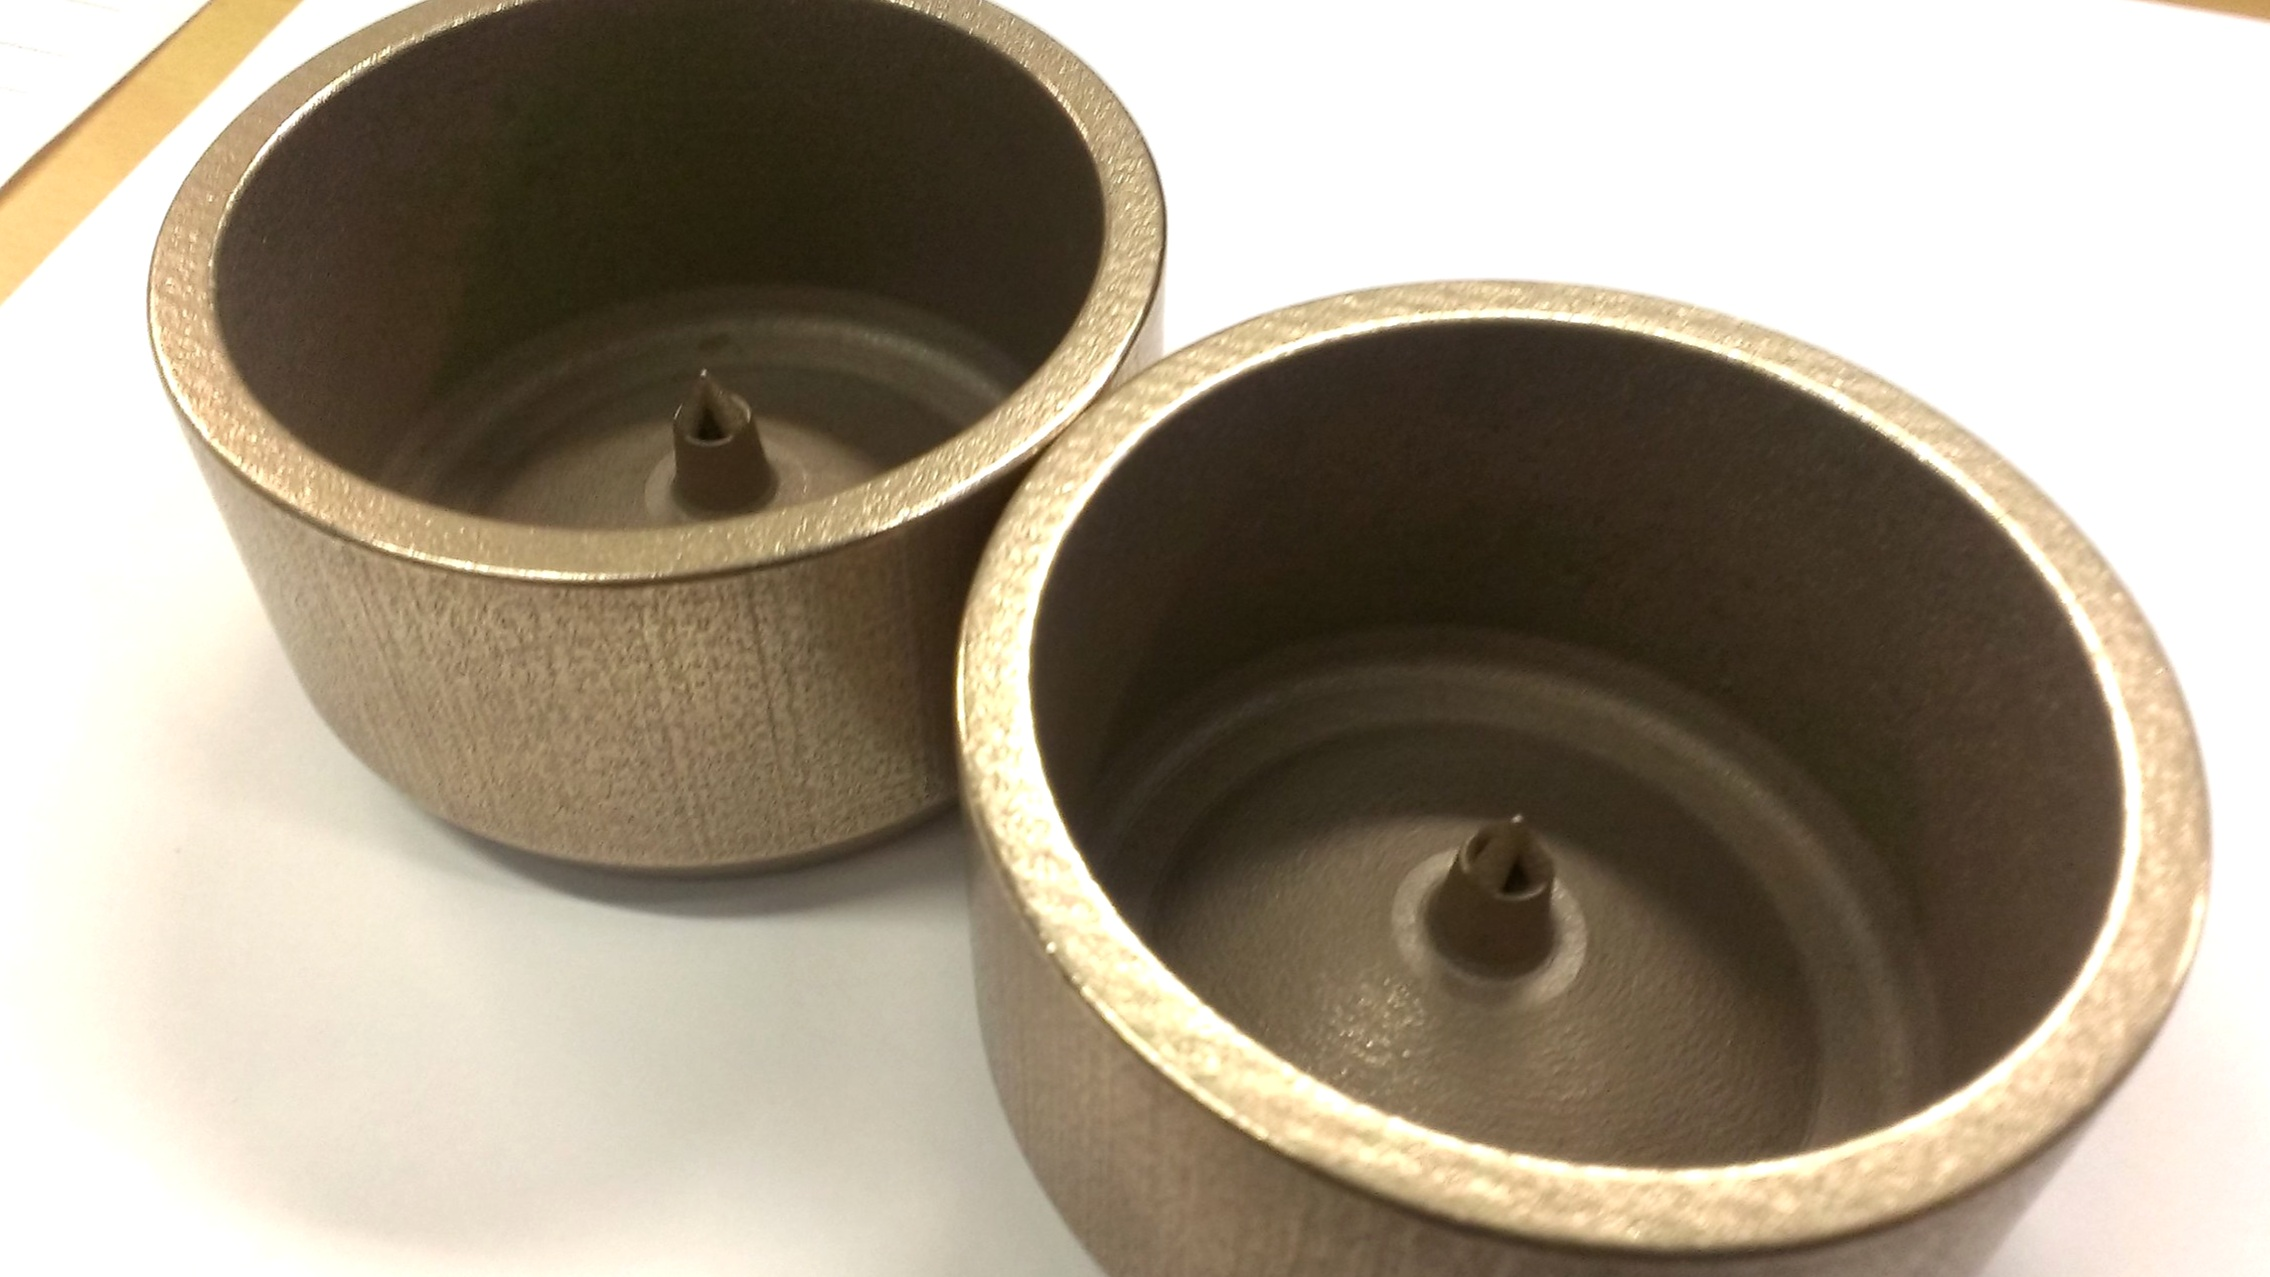 3D printed metal parts made of bronze alloy